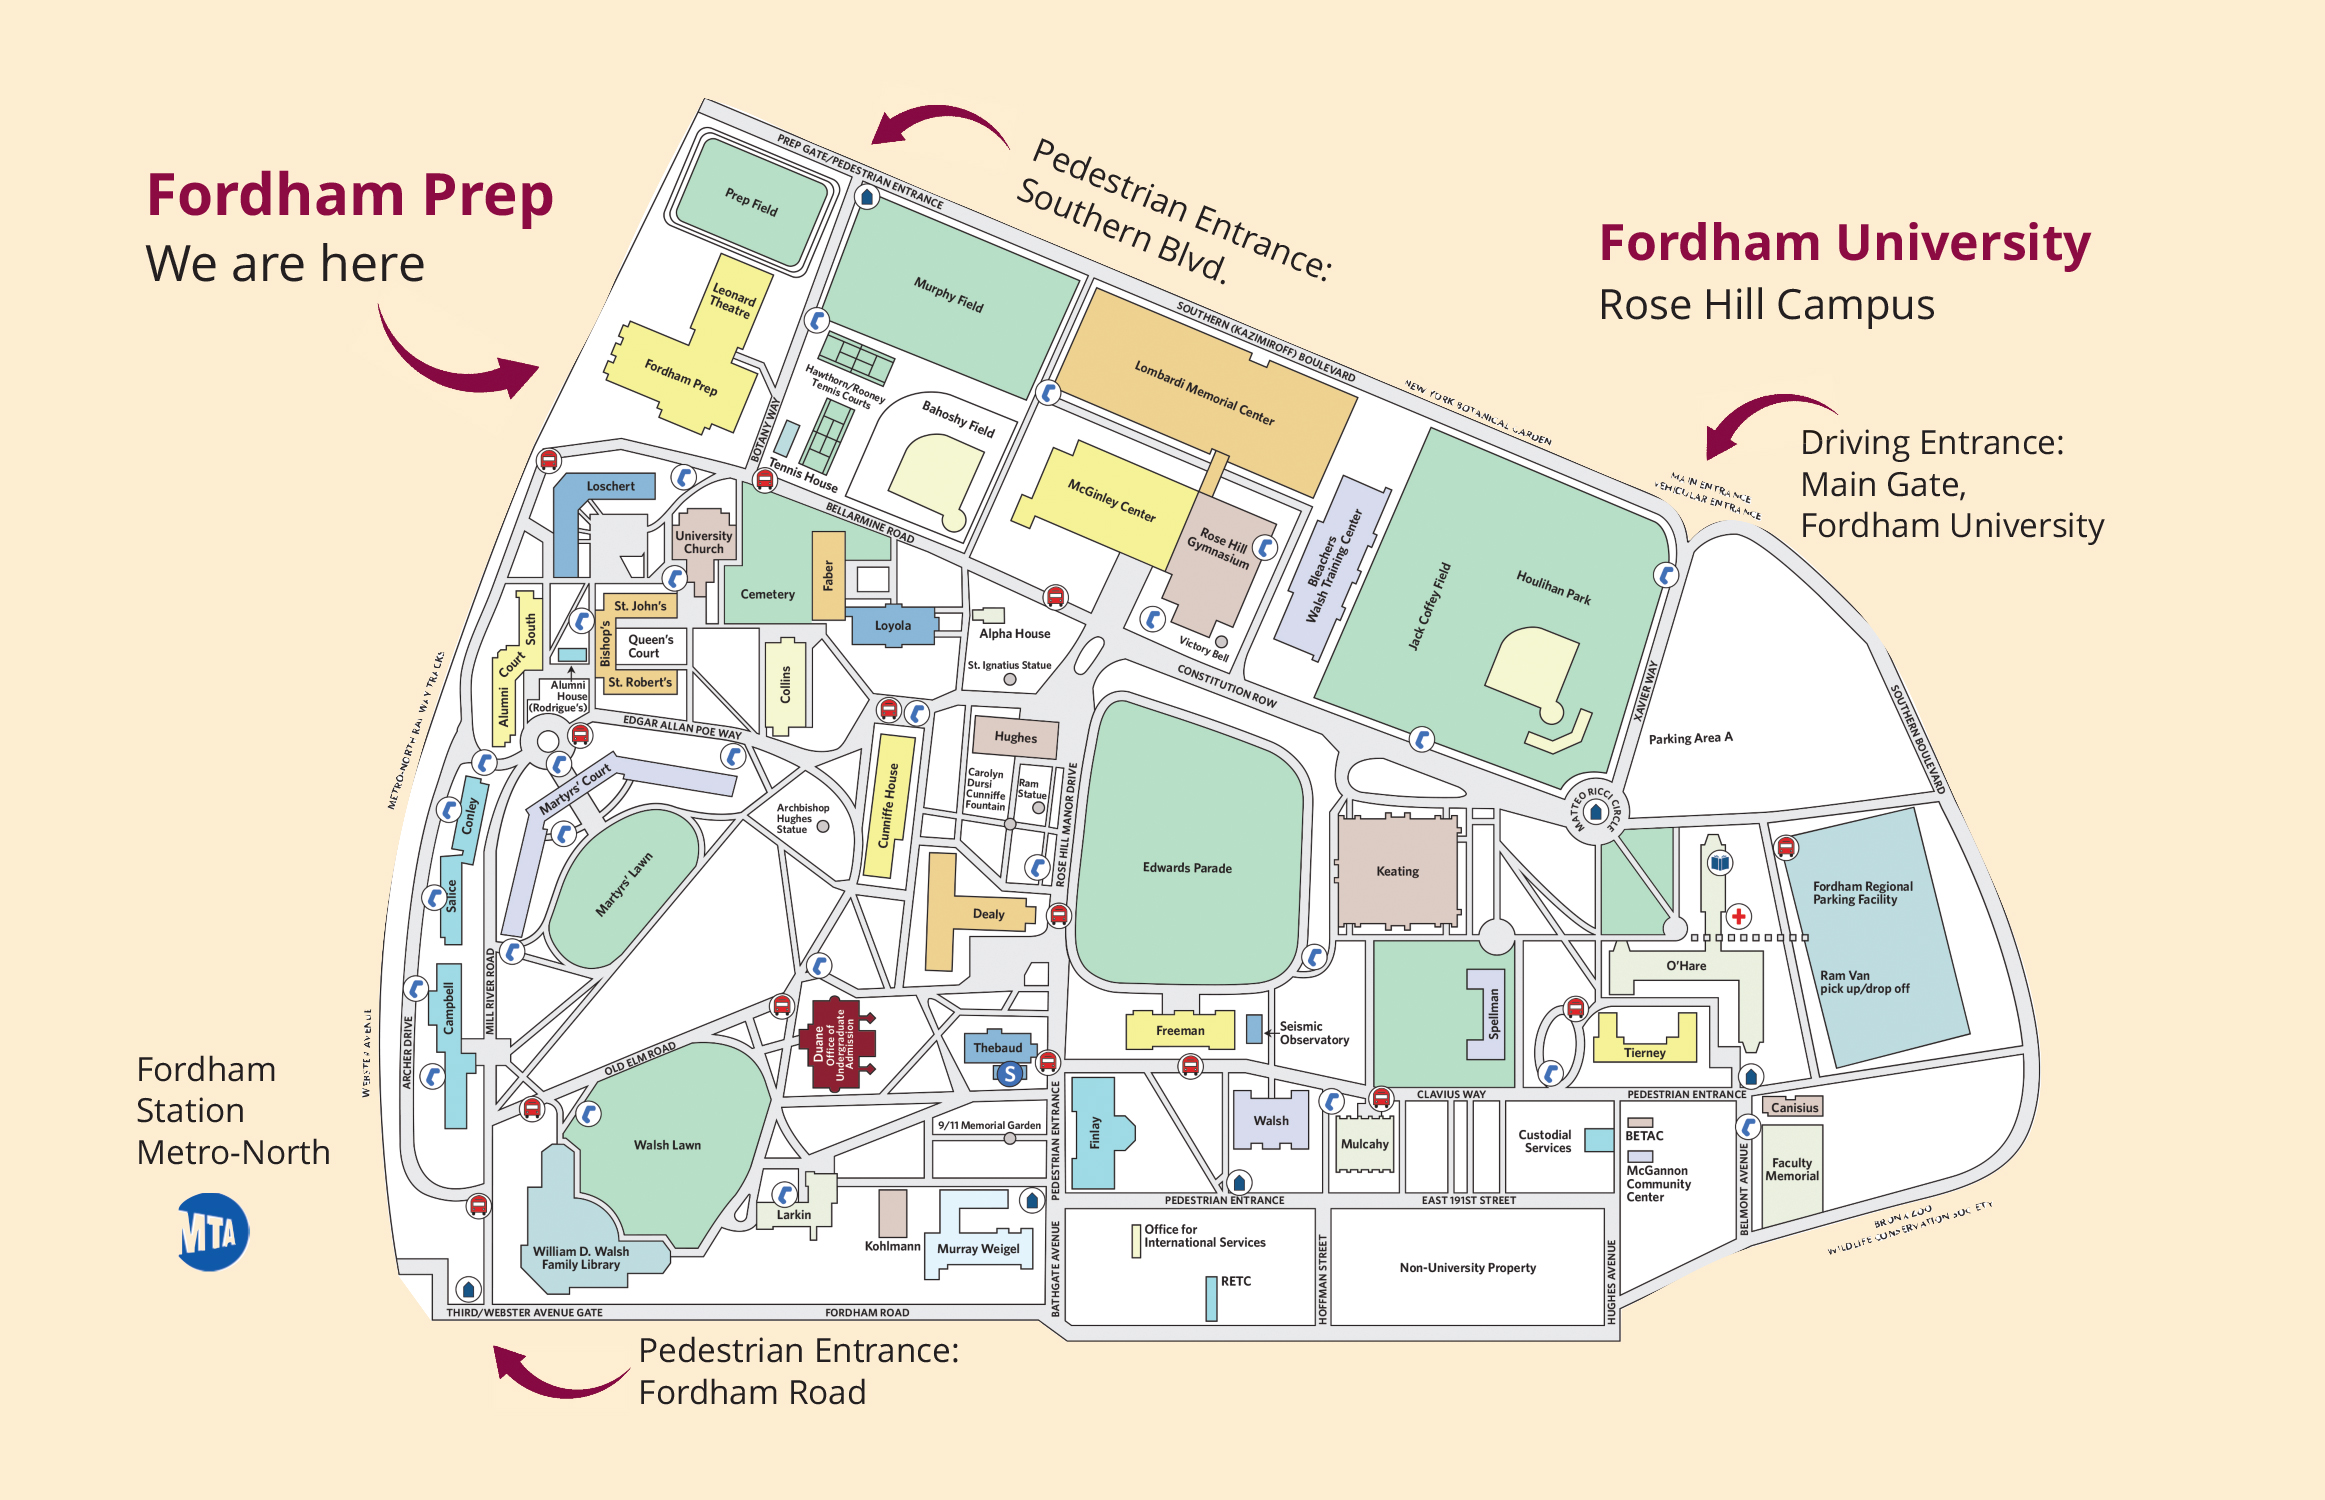 Fordham Preparatory School: Maps & Directions